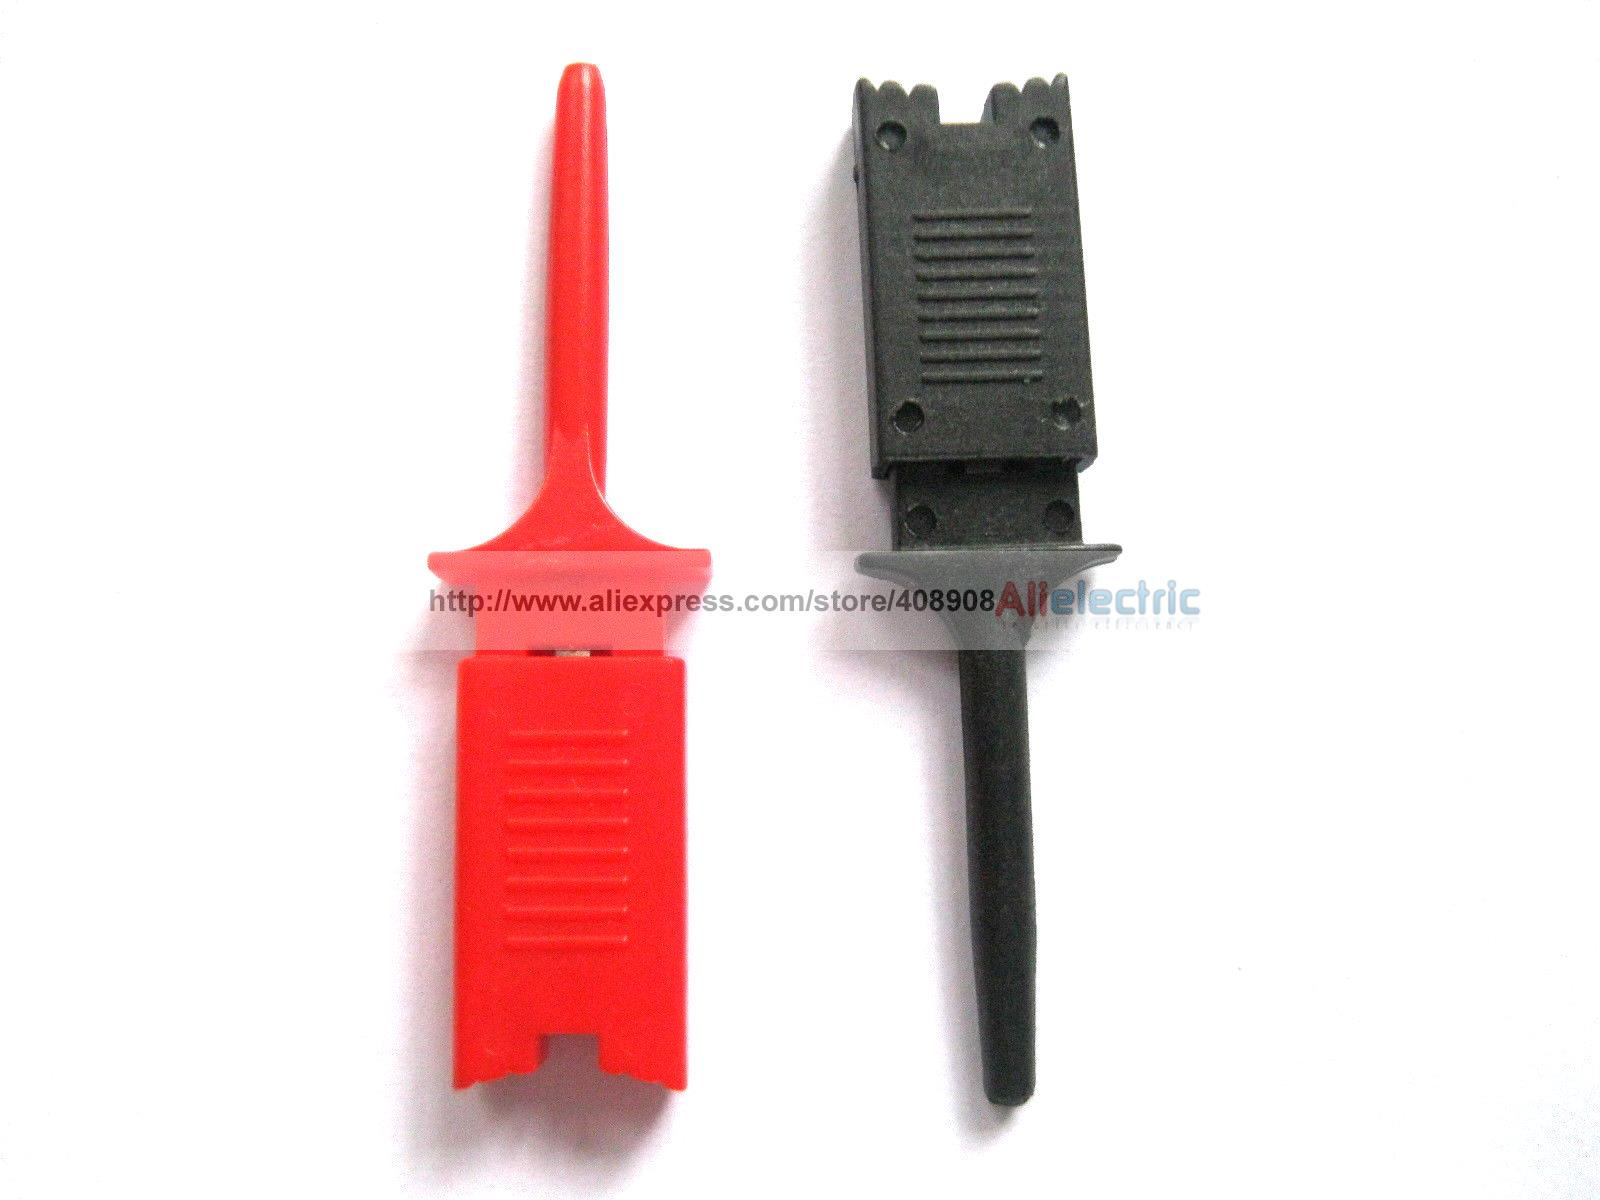 цена на 100 Pcs Flat Small Test Clip for Multimeter Red Black